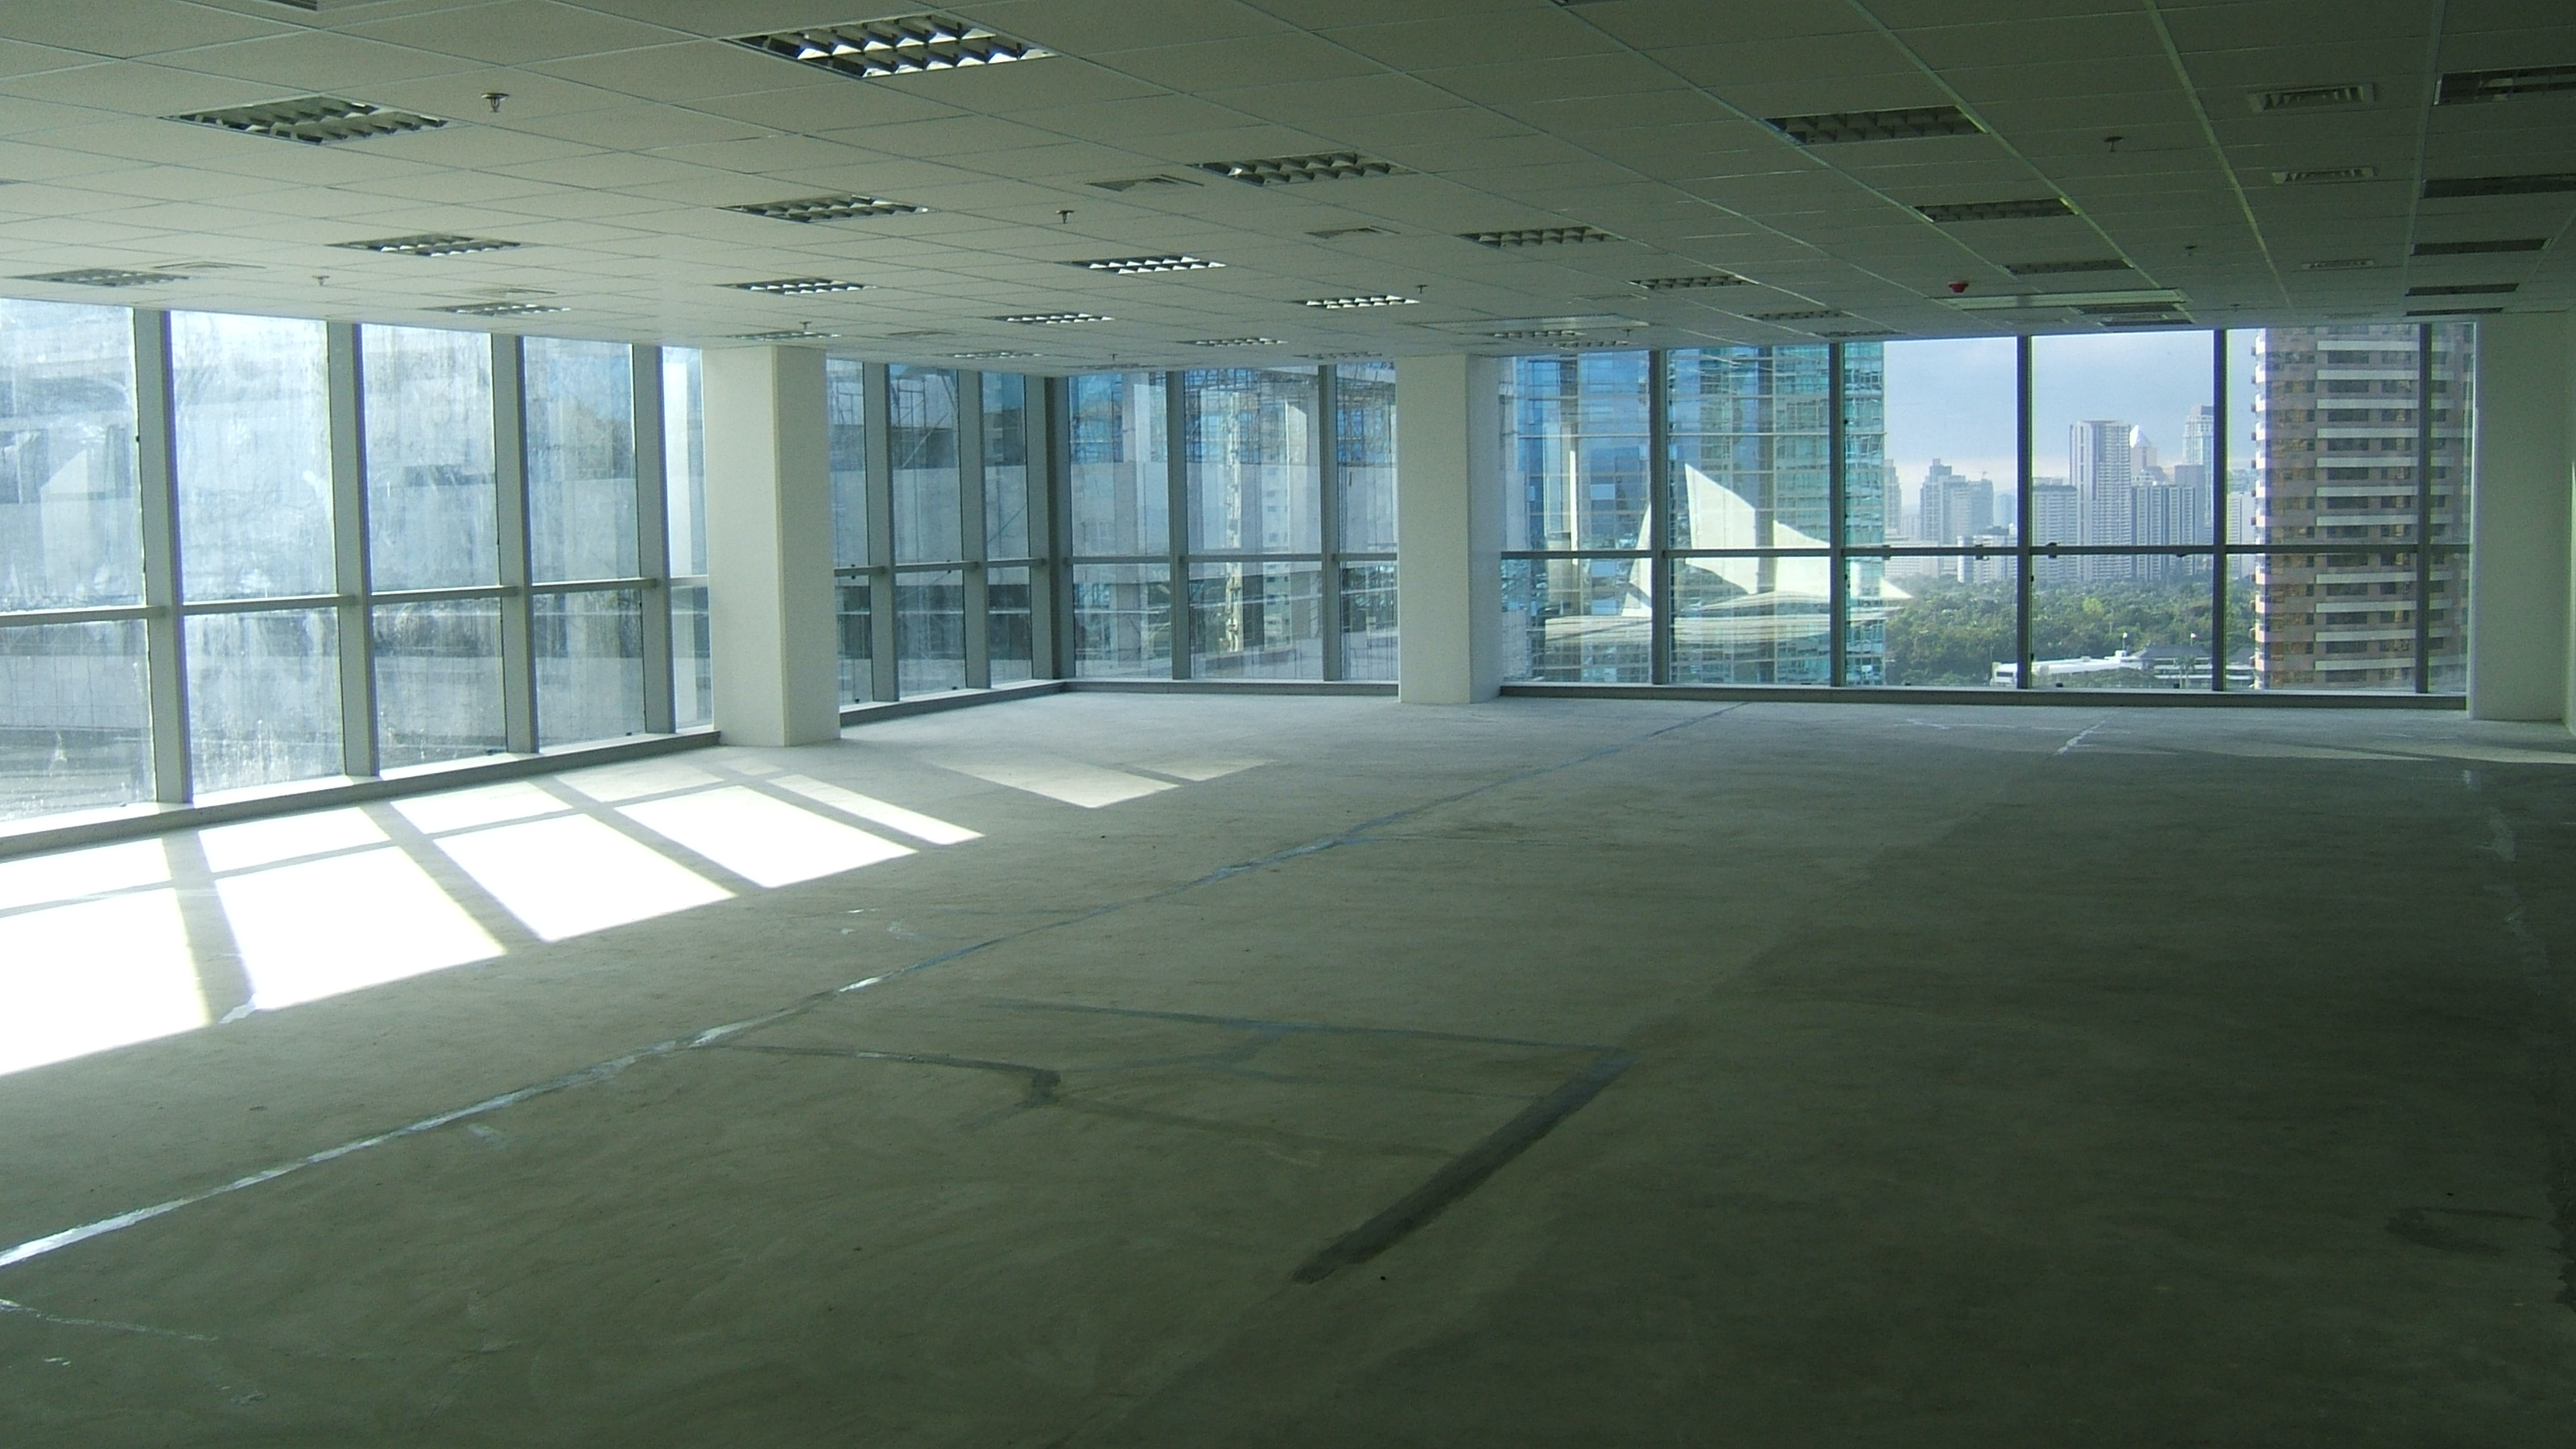 Office space available for rent 28 images land with for Yorck wohnideen gbr